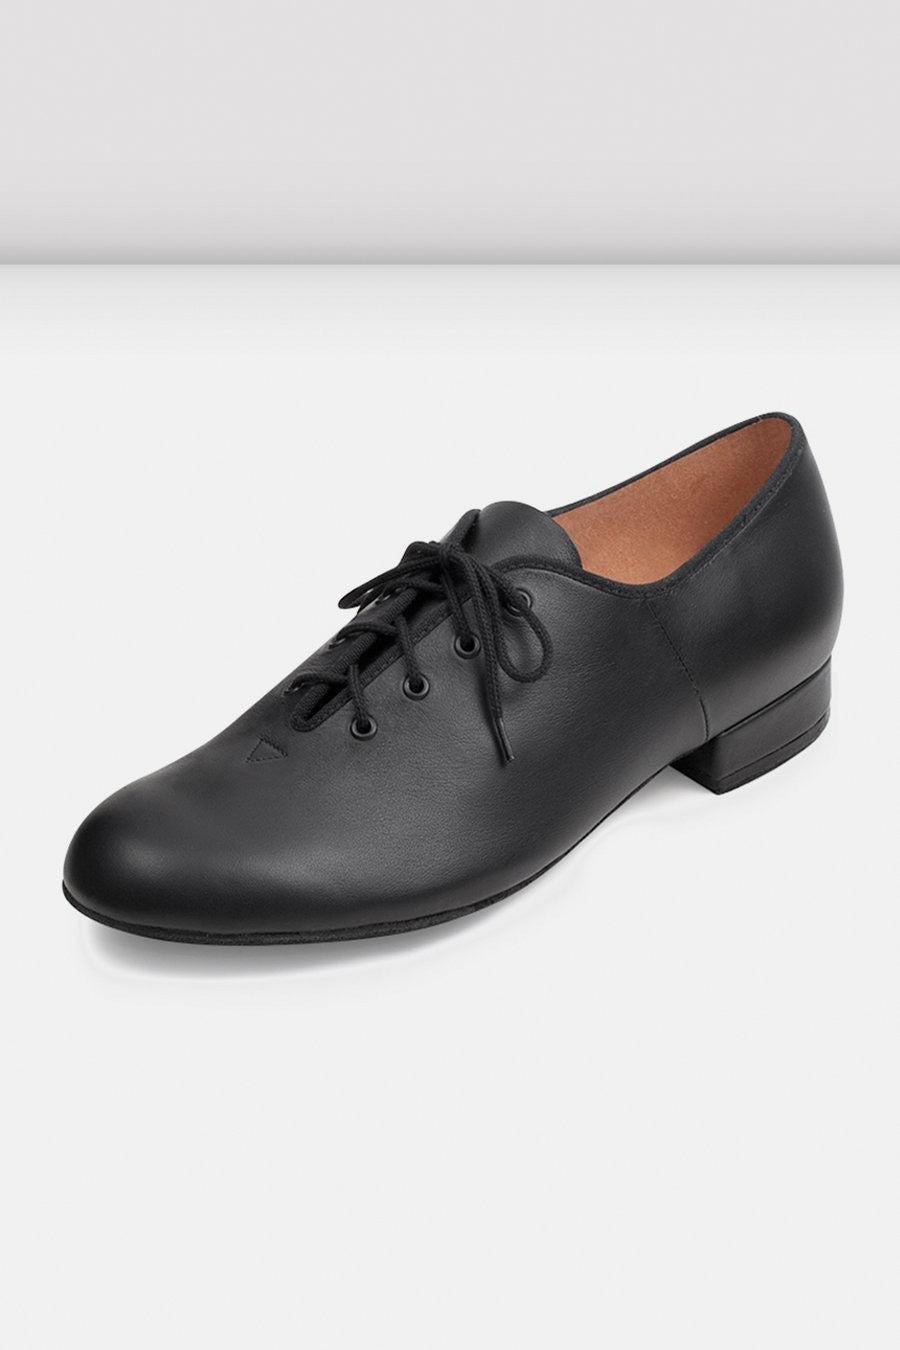 Bloch Leather Jazz Oxford Character Shoes